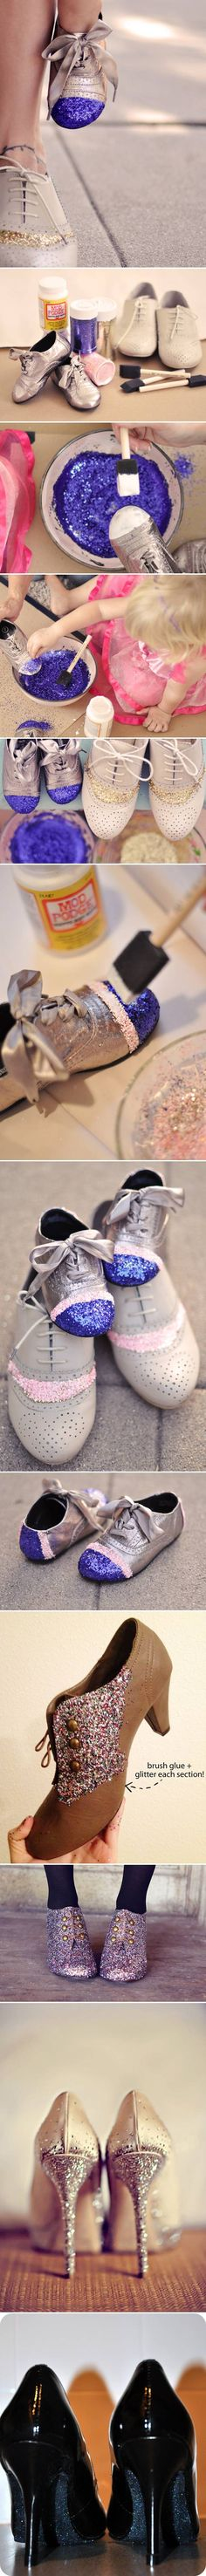 DIY Easy Glitter Shoes